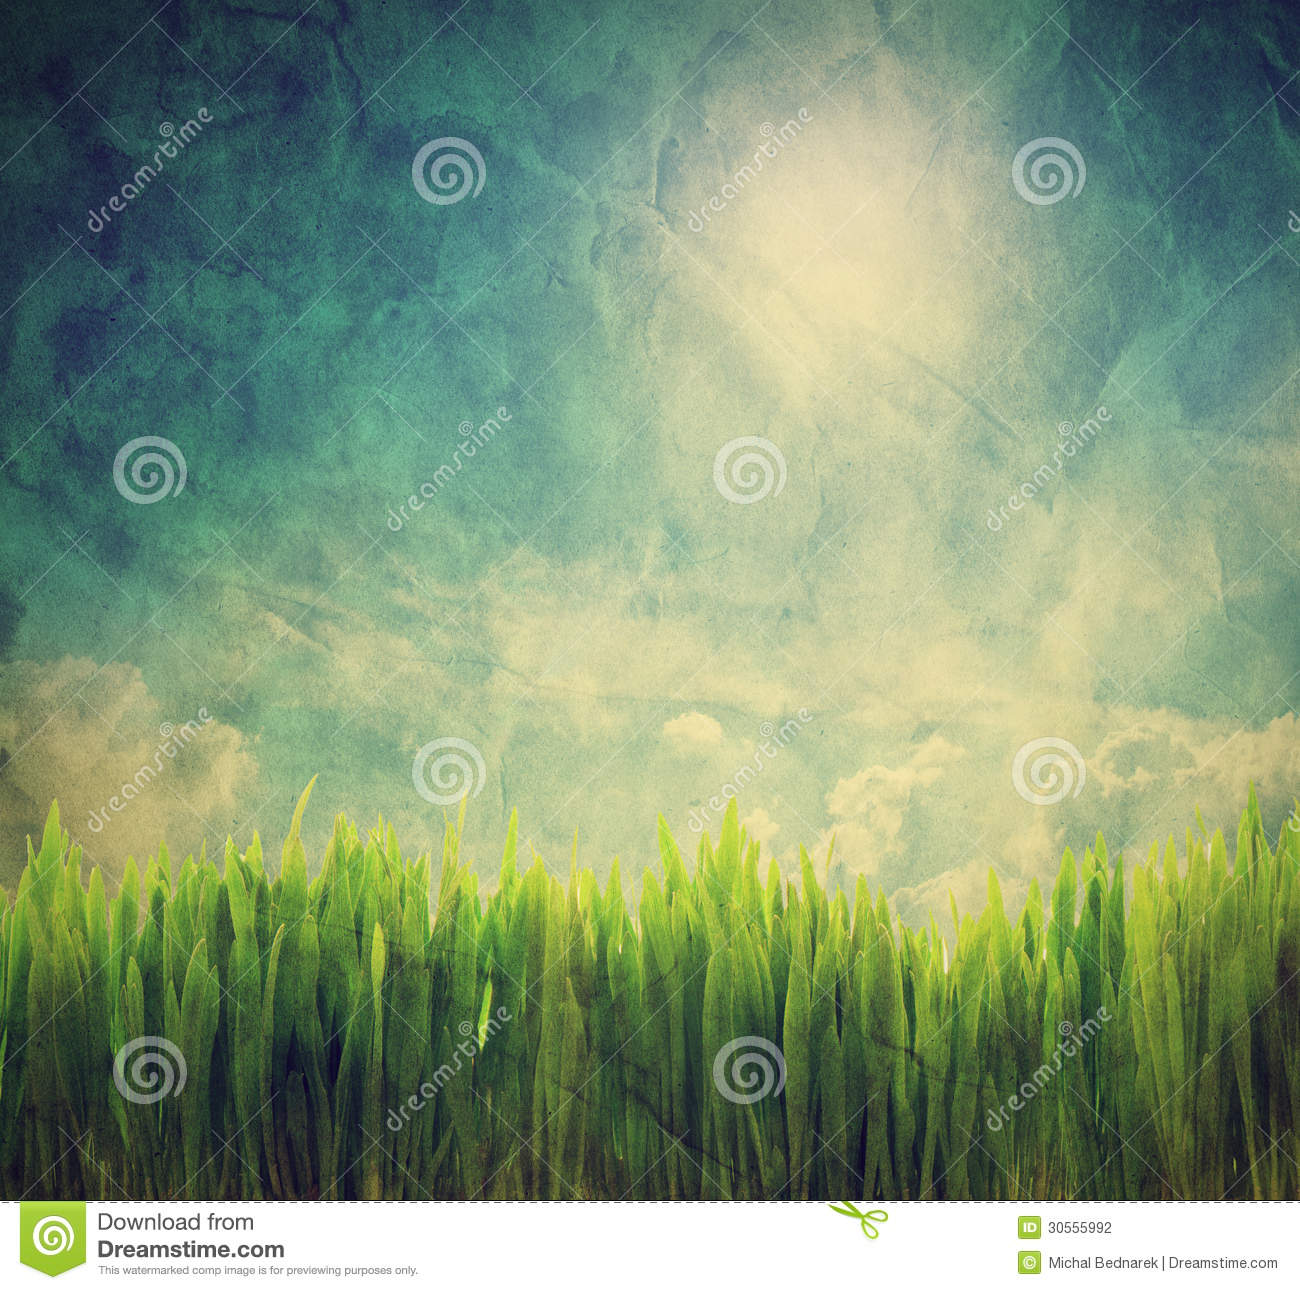 Vintage Photo Of Grass: Vintage, Retro Image Of Nature Landscape Stock Photo